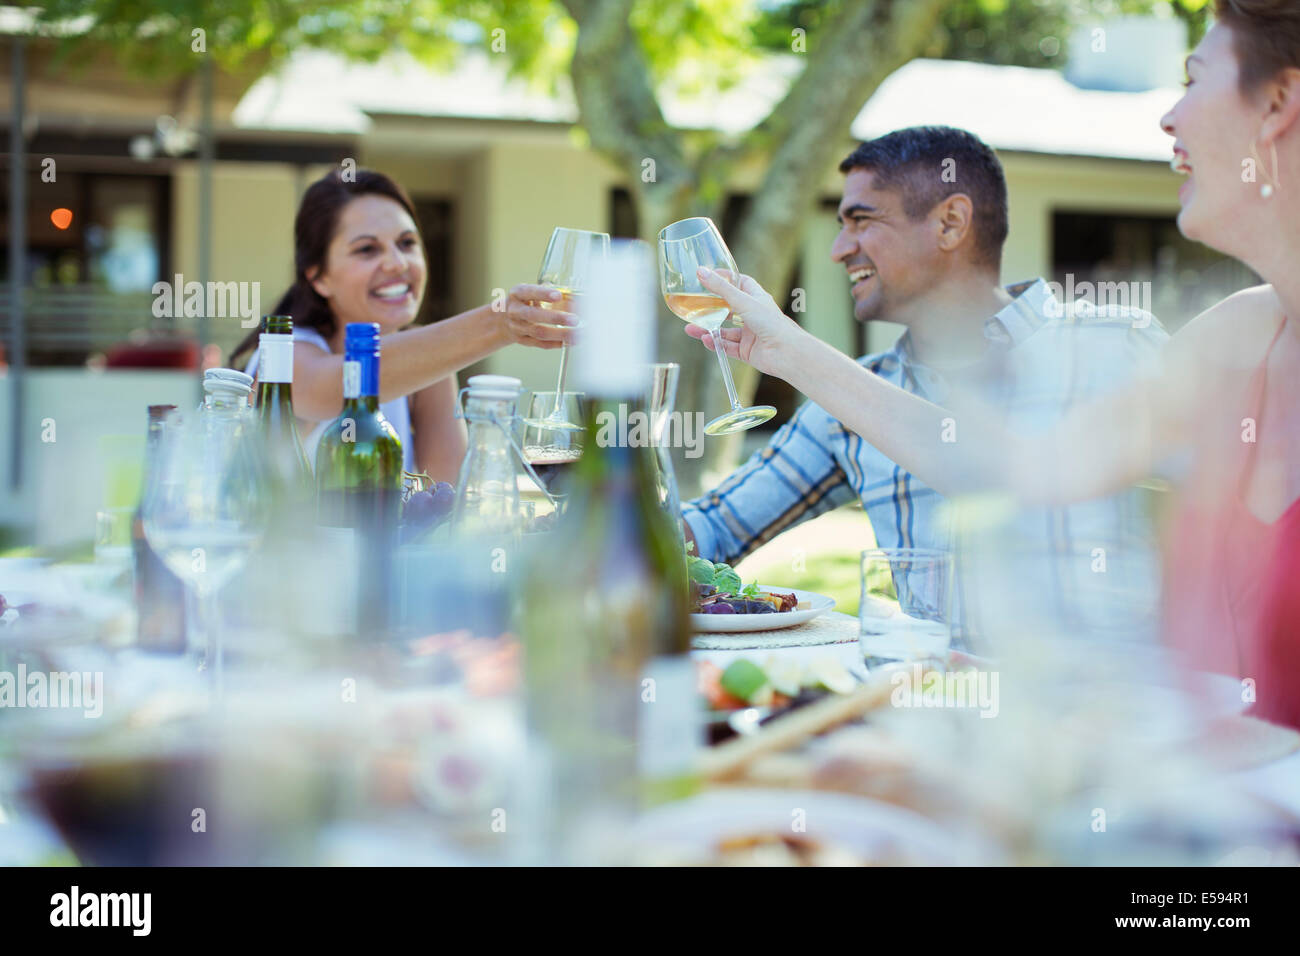 Friends toasting each other at dinner outdoors - Stock Image